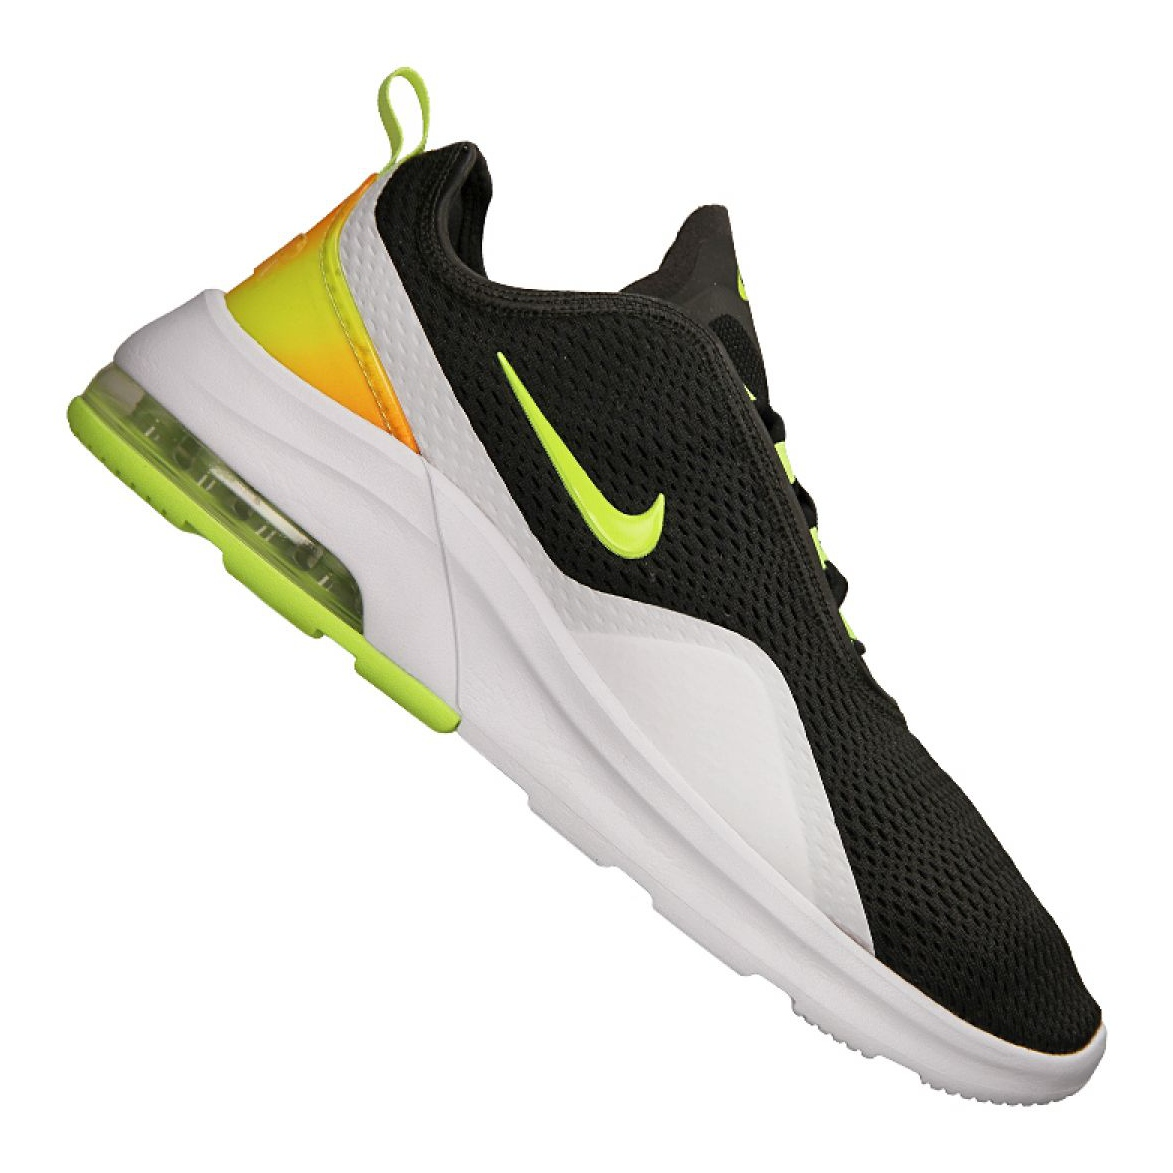 Sapatos Nike Air Max Motion 2 M AO0266 007 preto